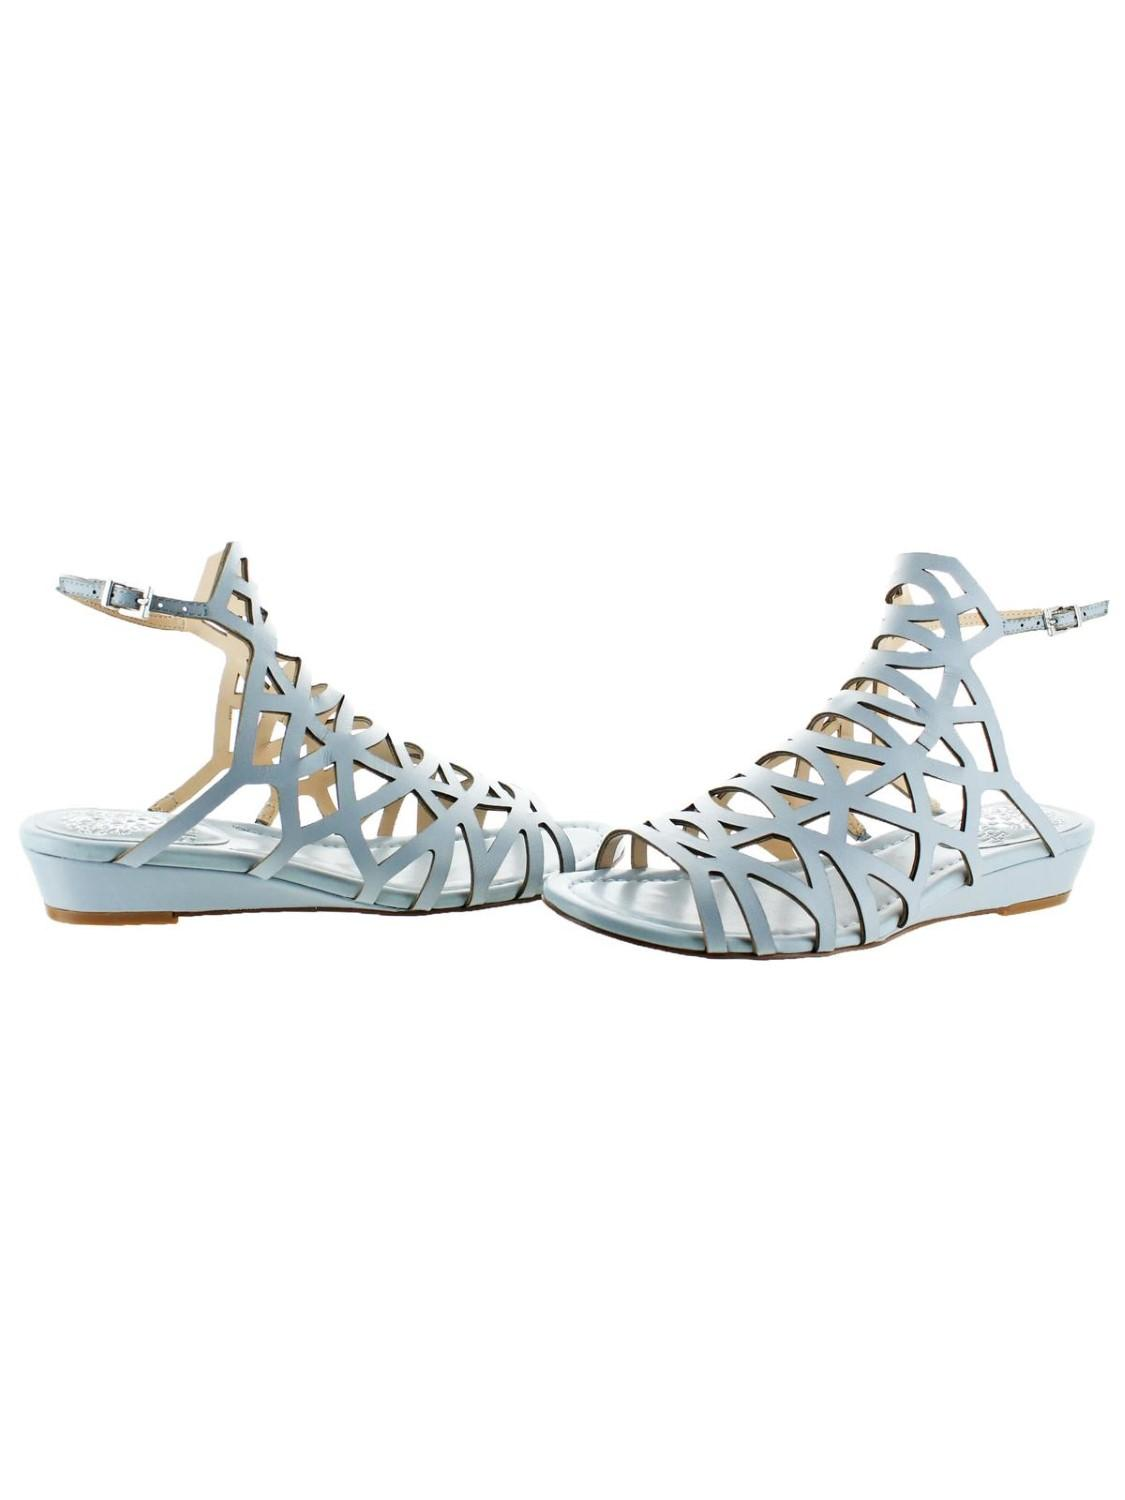 d5bc22044 Vince Camuto - Blue Illana Leather Strappy Slingback Caged Sandal Shoes -  Lyst. View fullscreen